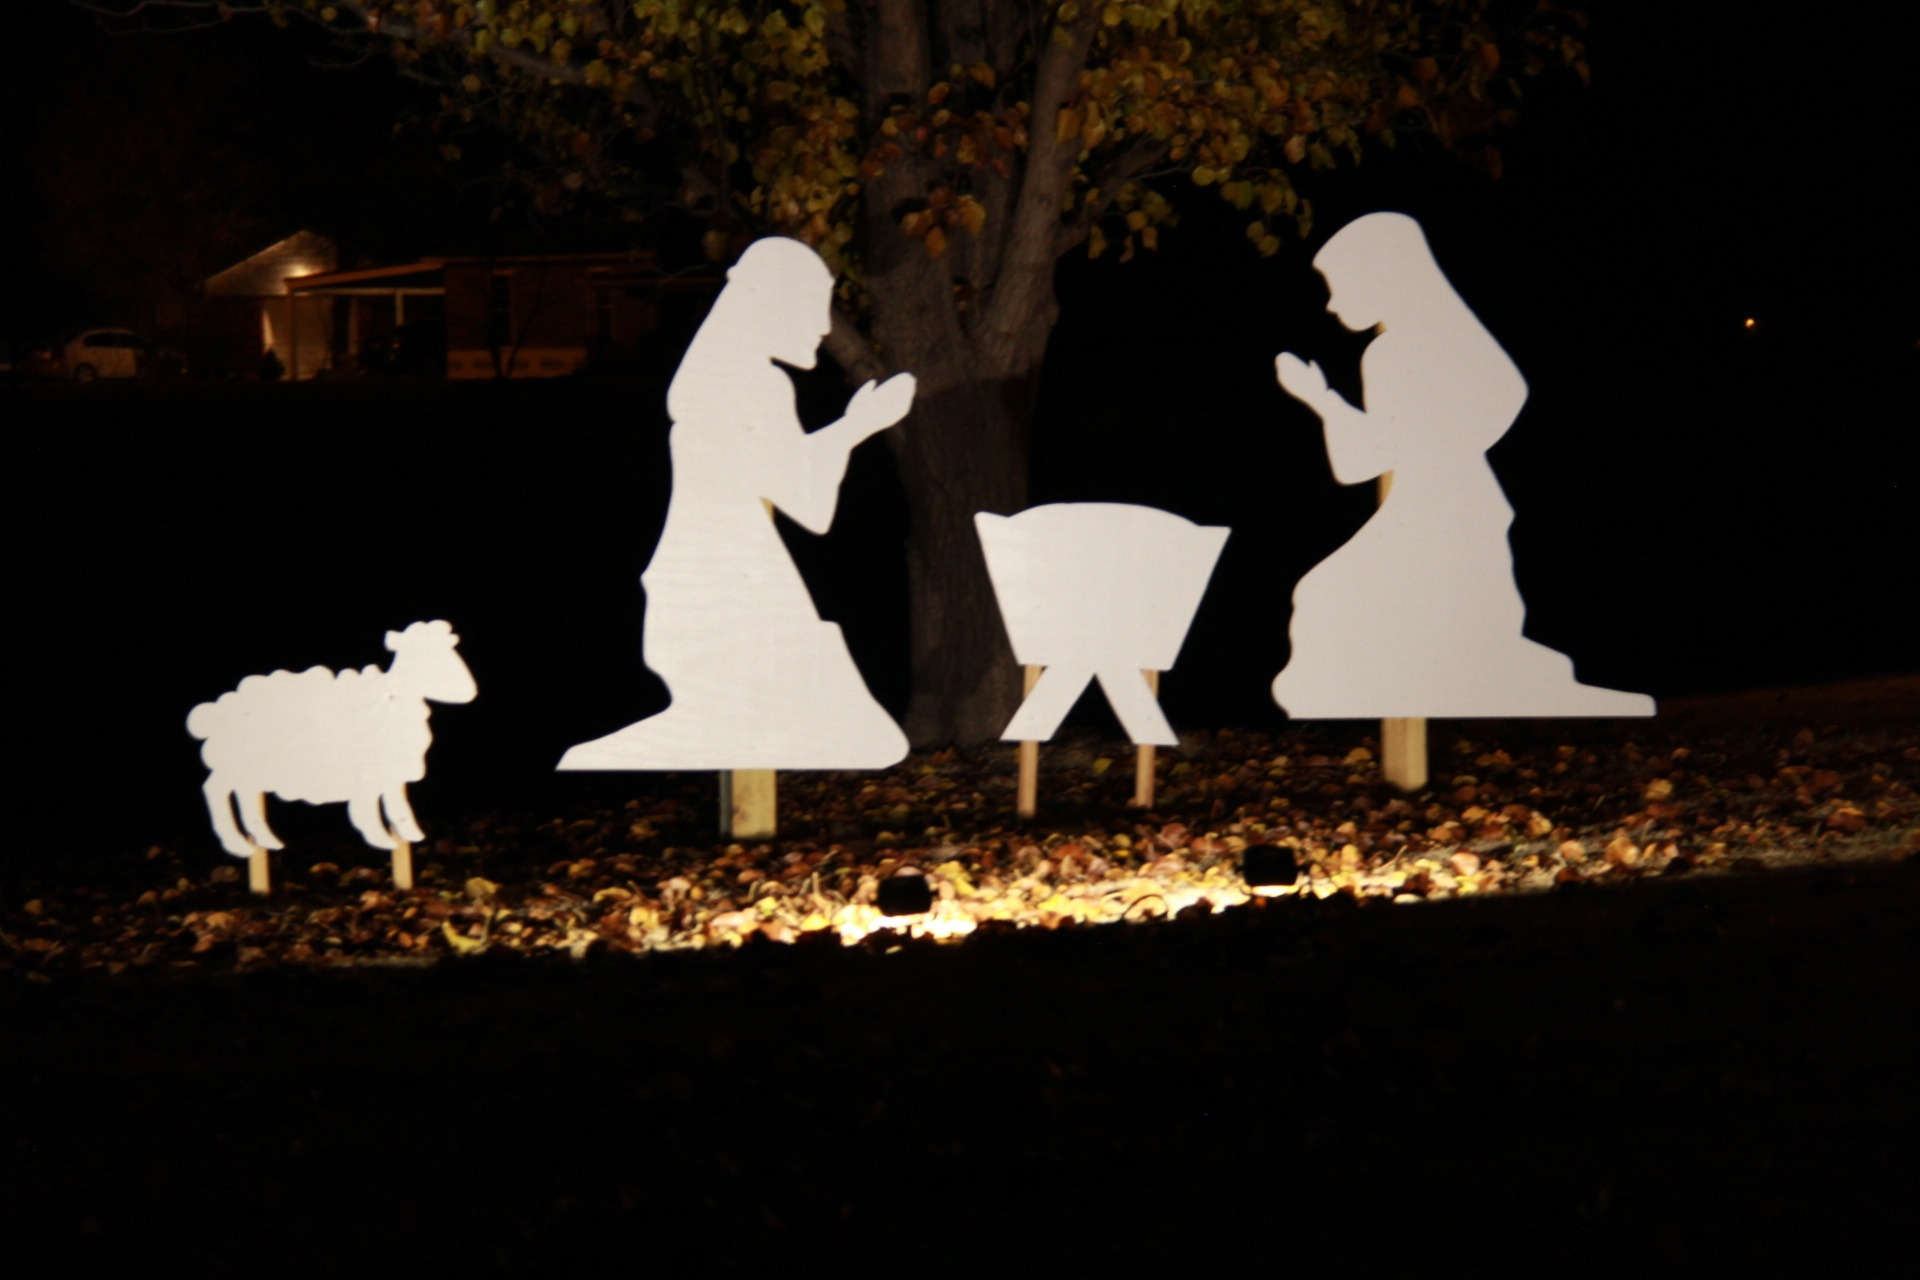 How to Make a Nativity Scene + Cook Portable Warehouses